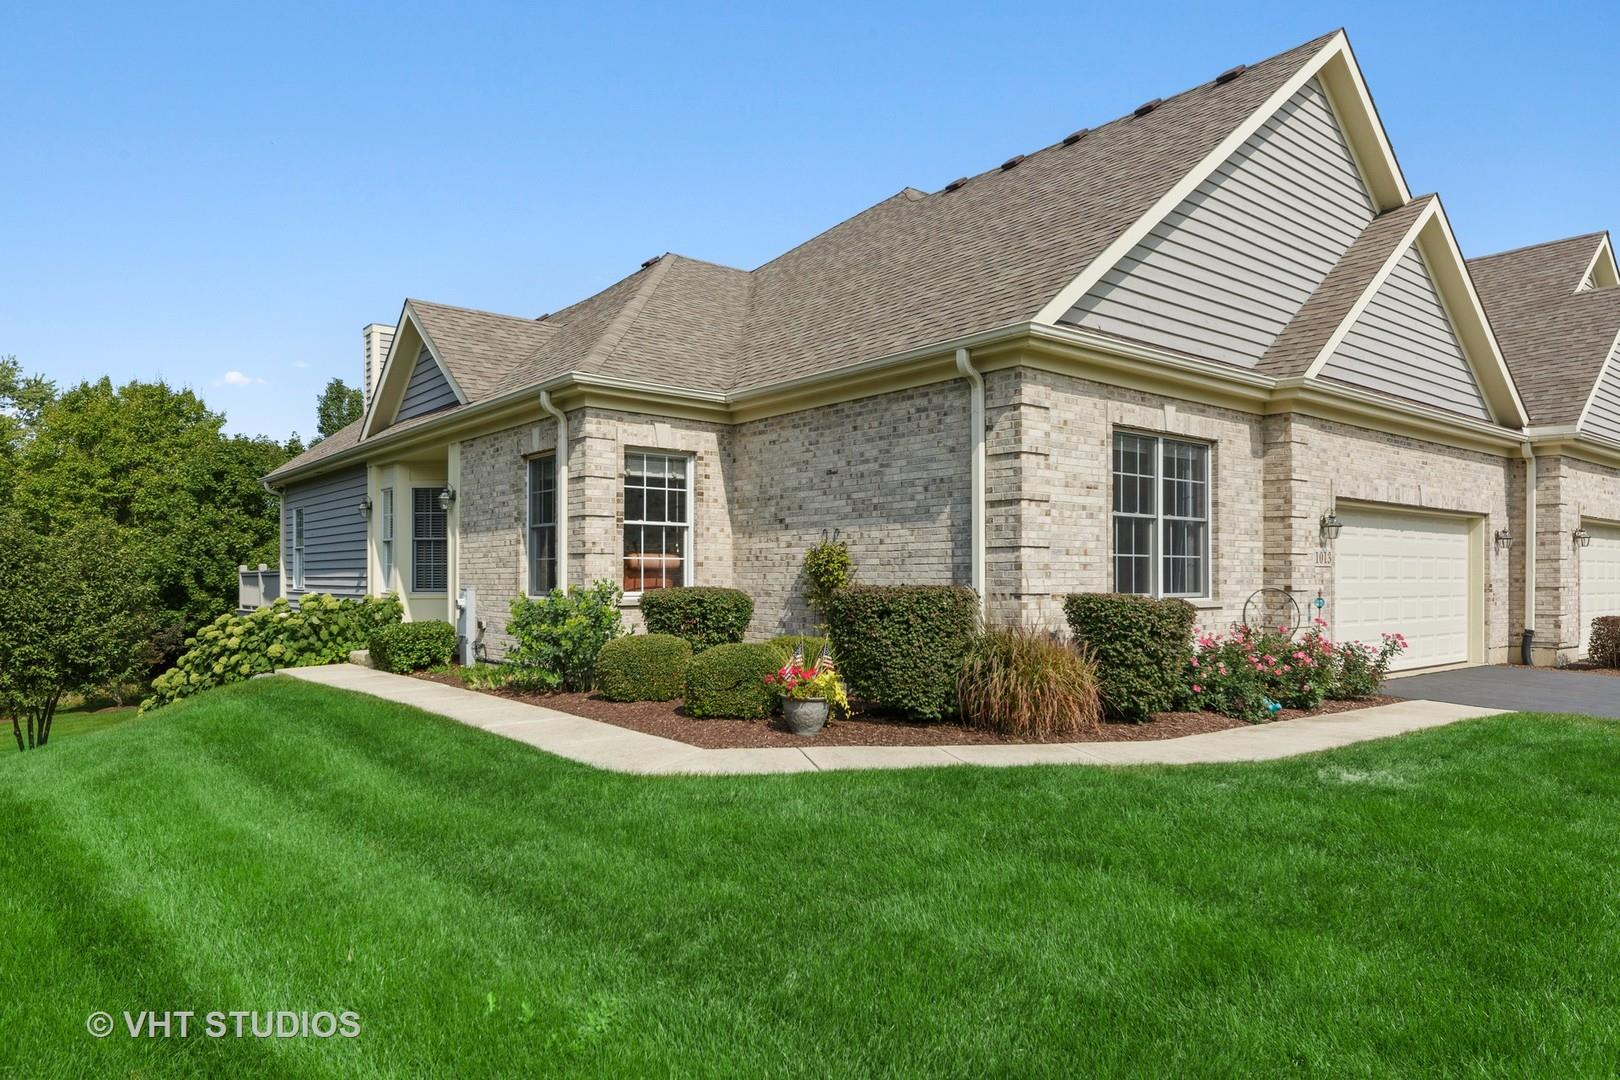 1013 Heron Way #1013, Woodstock, IL 60098 - #: 10876607